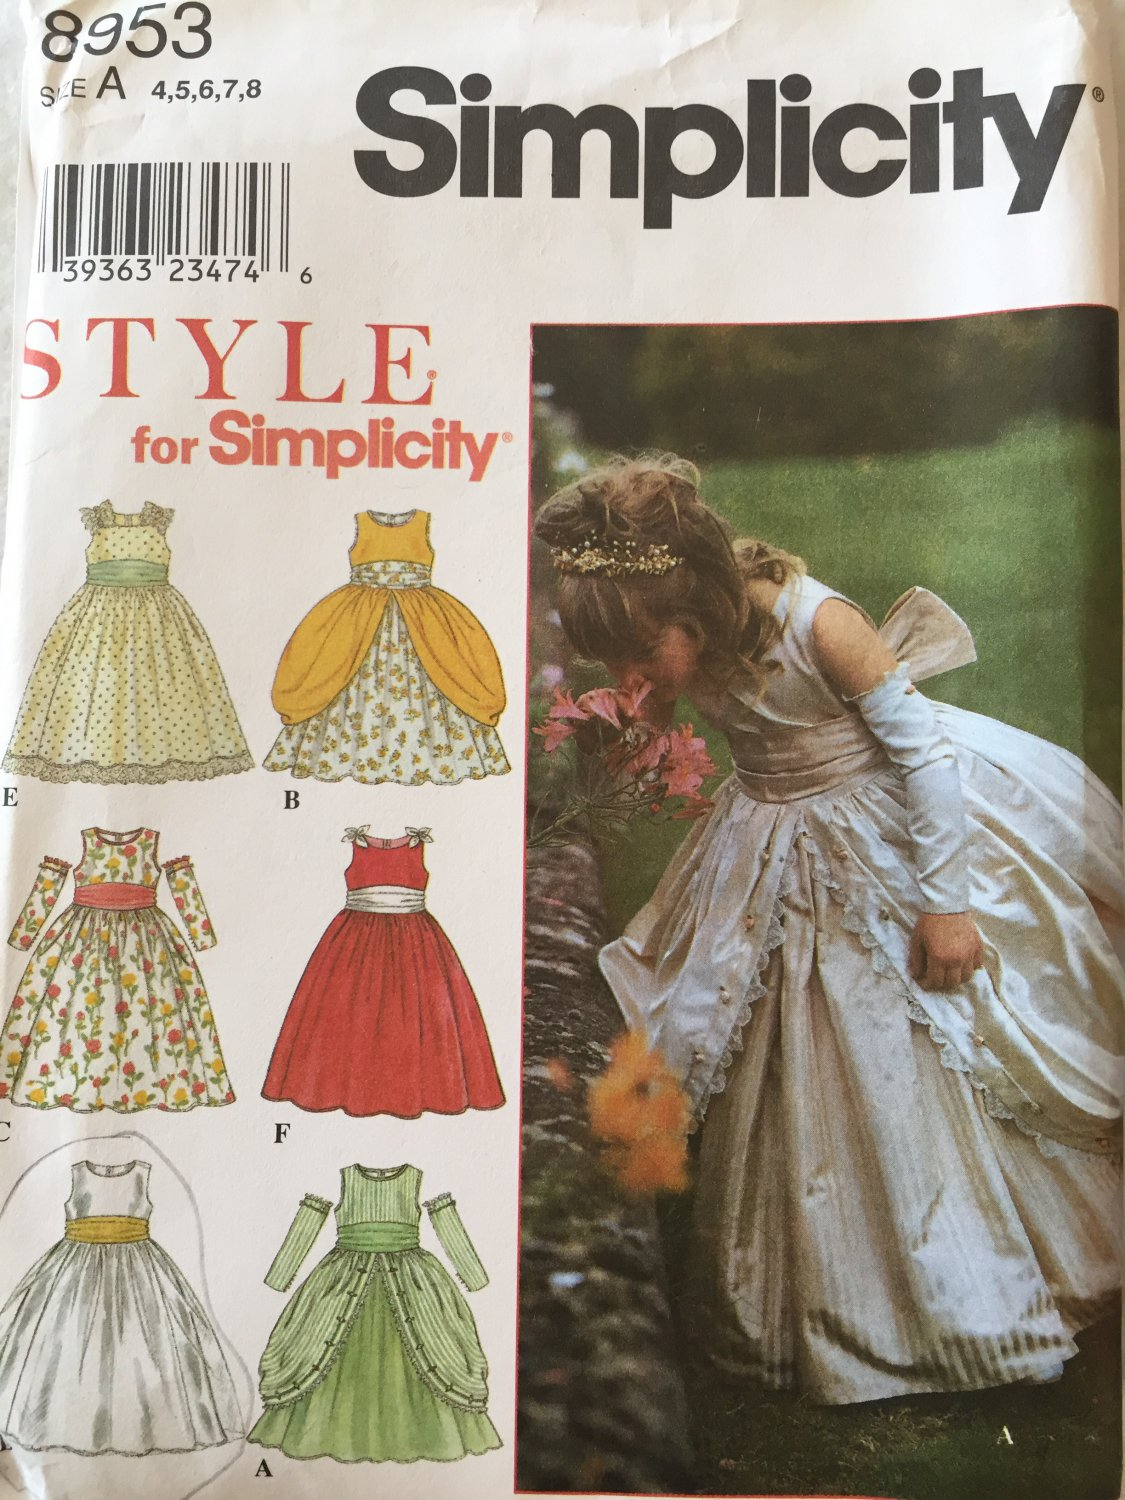 SOLD OUT! Simplicity 8953 Special Occasion Dress for girls Flower Girl  4 5 6 7 8 Uncut